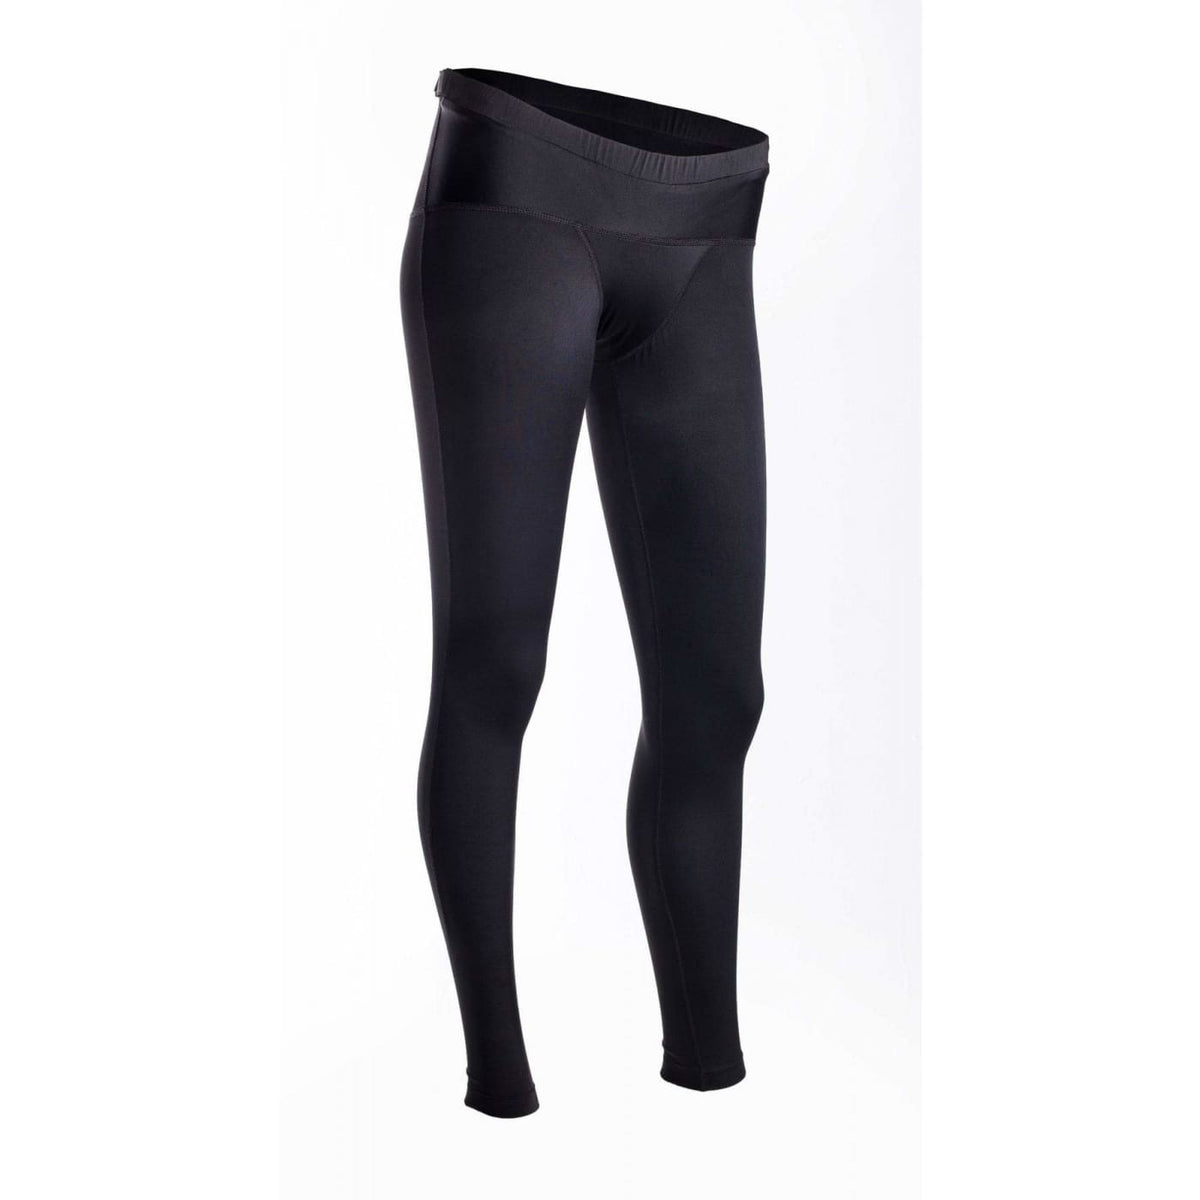 SRC Pregnancy Leggings - Black XXL - FOR MUM - MATERNITY SUPPORT GARMENTS (PRE/POST)